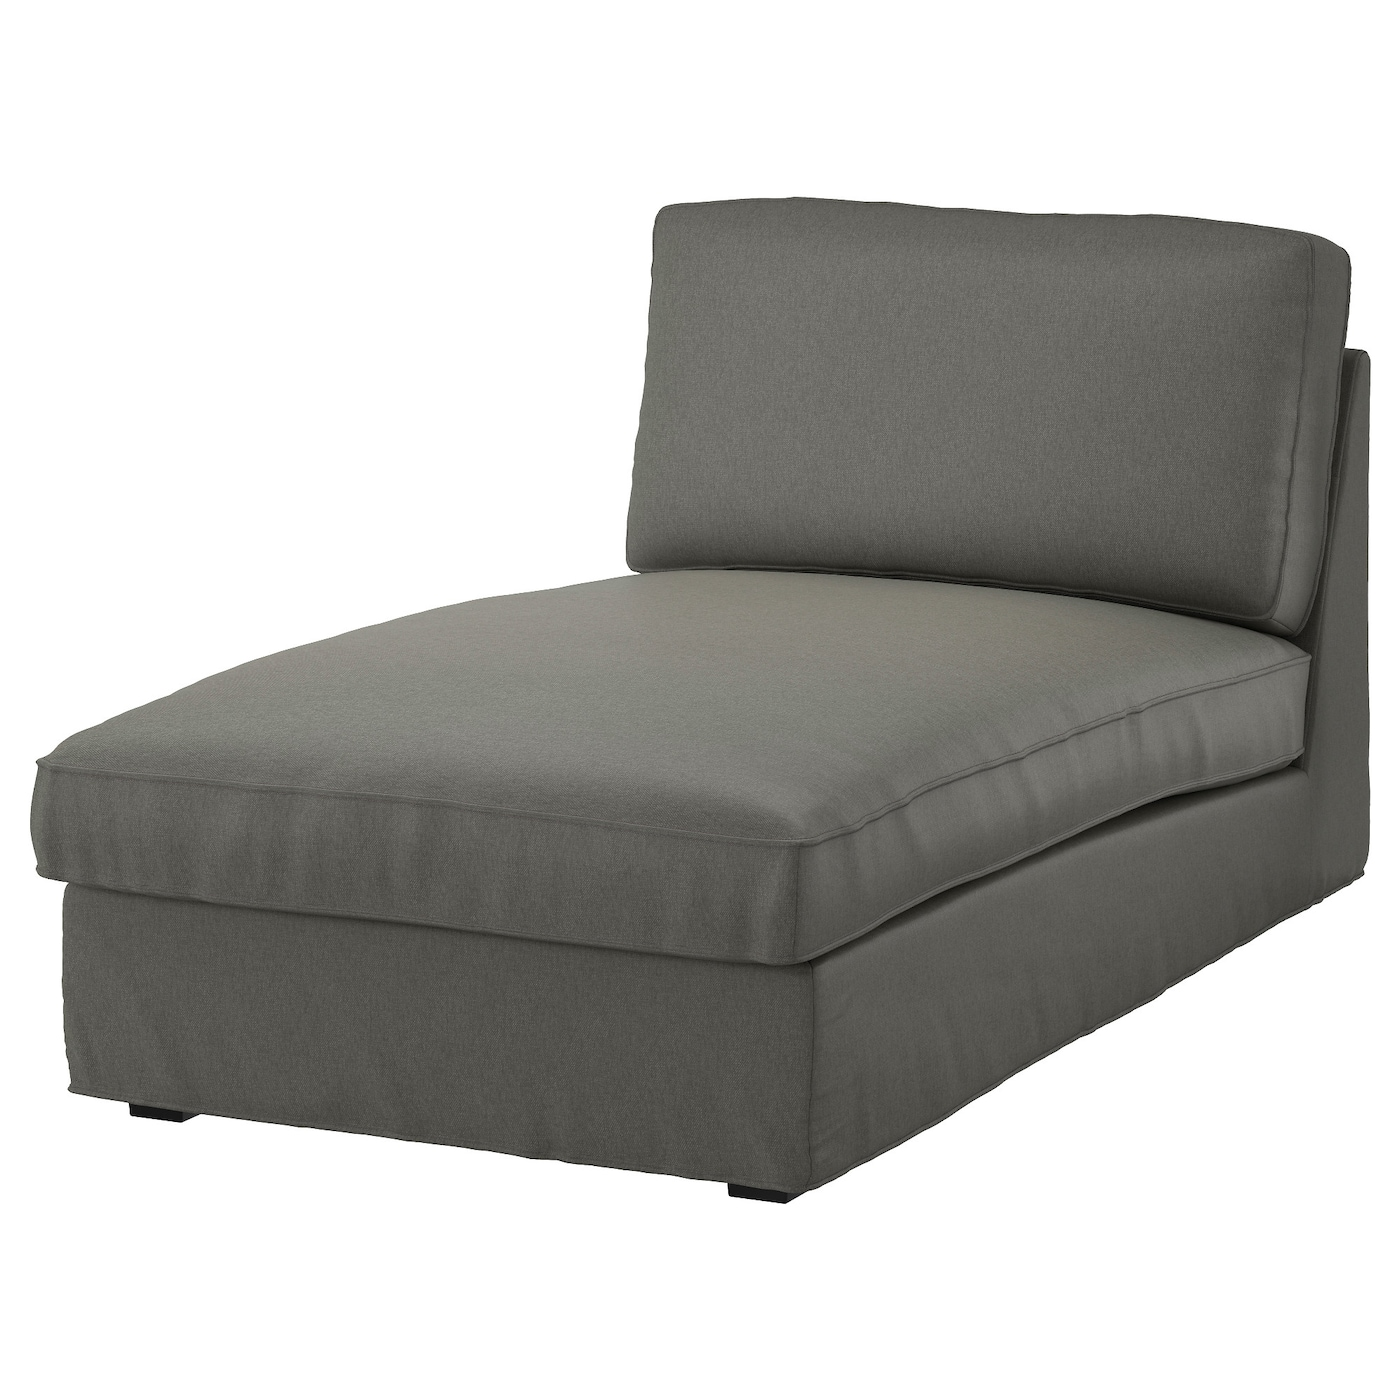 Kivik cover for chaise longue borred grey green ikea for Chaise longue jardin ikea